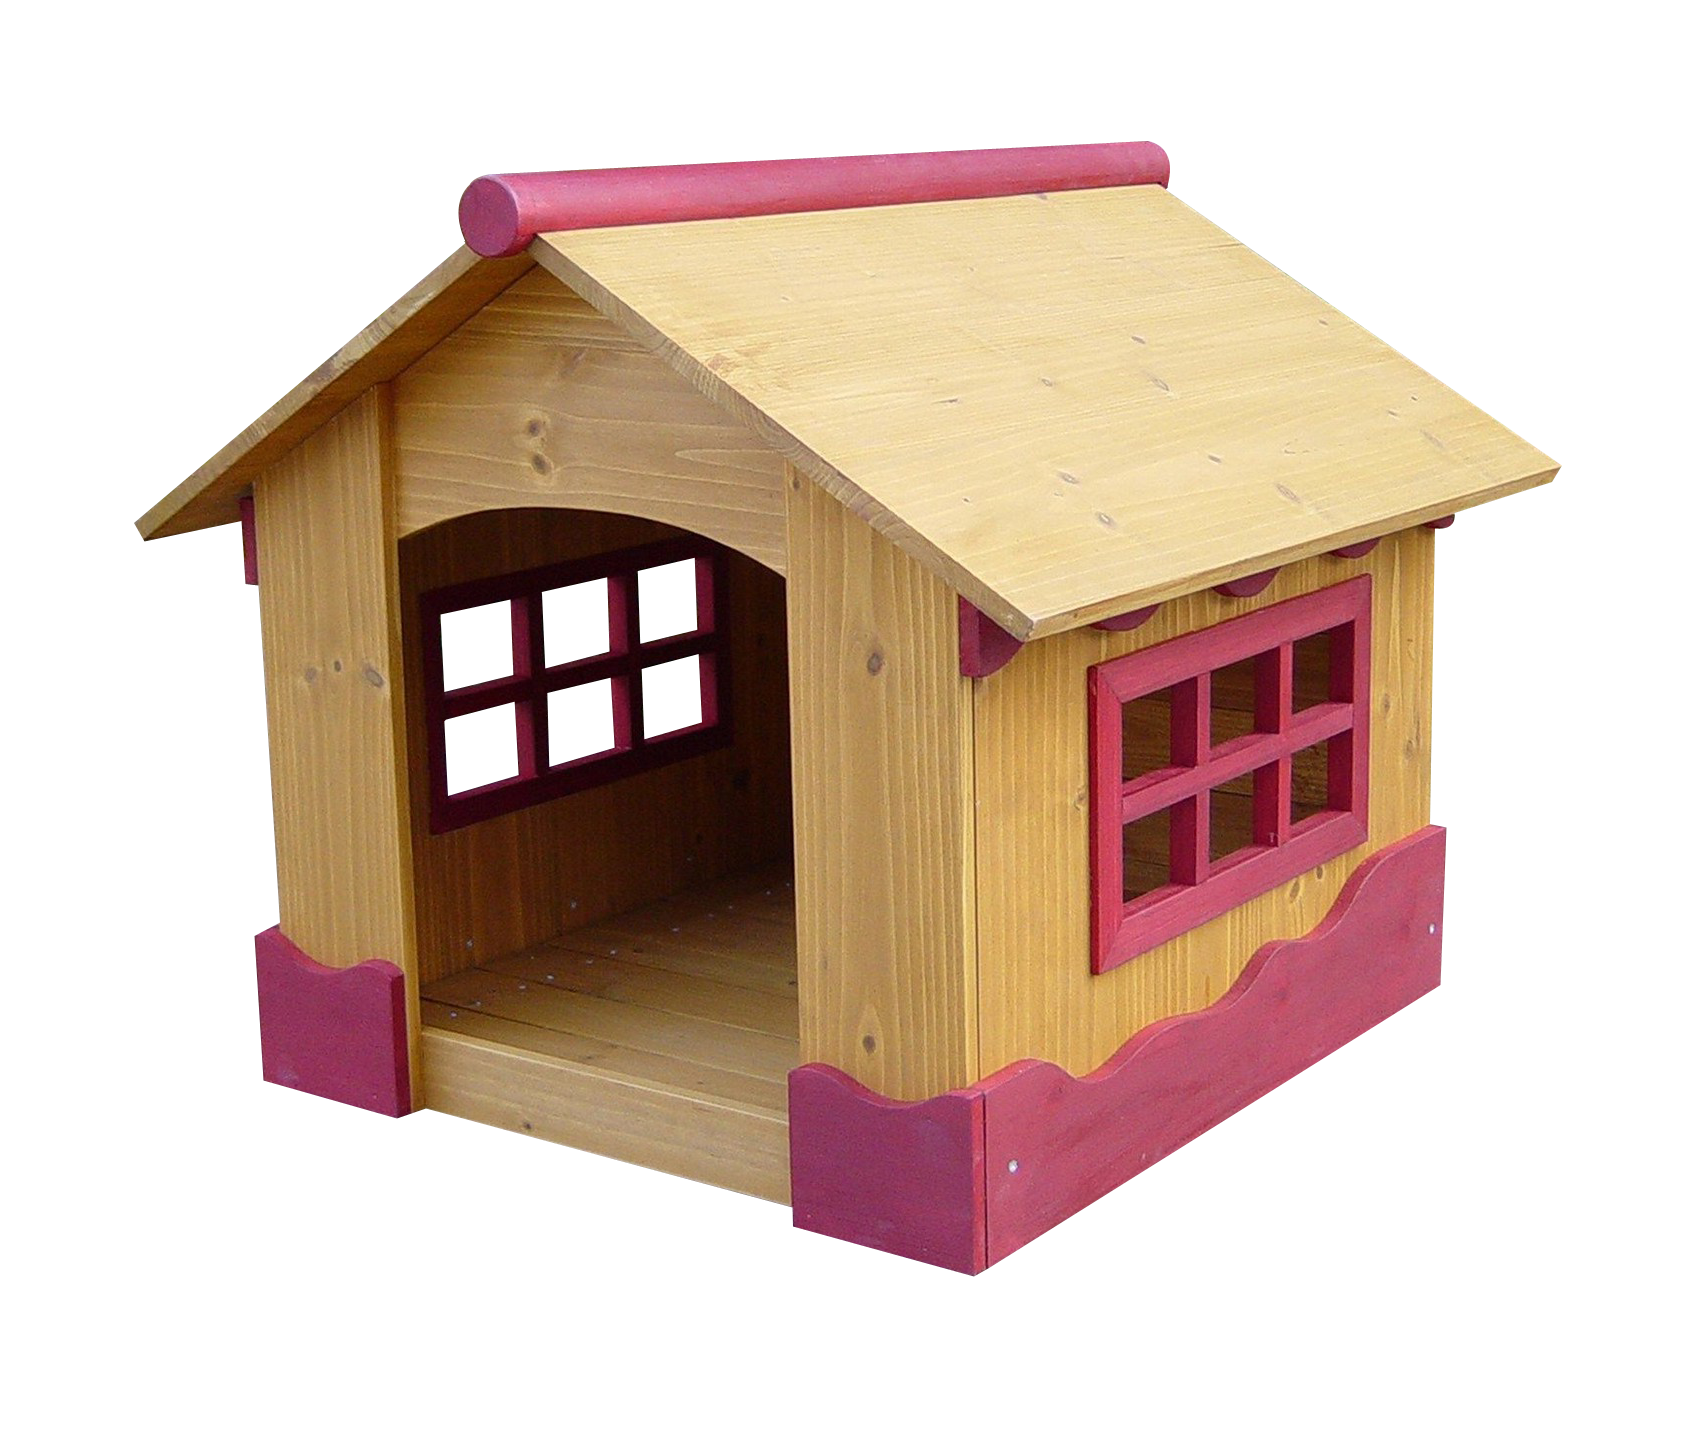 Download Dog Pet House PNG Image for Free